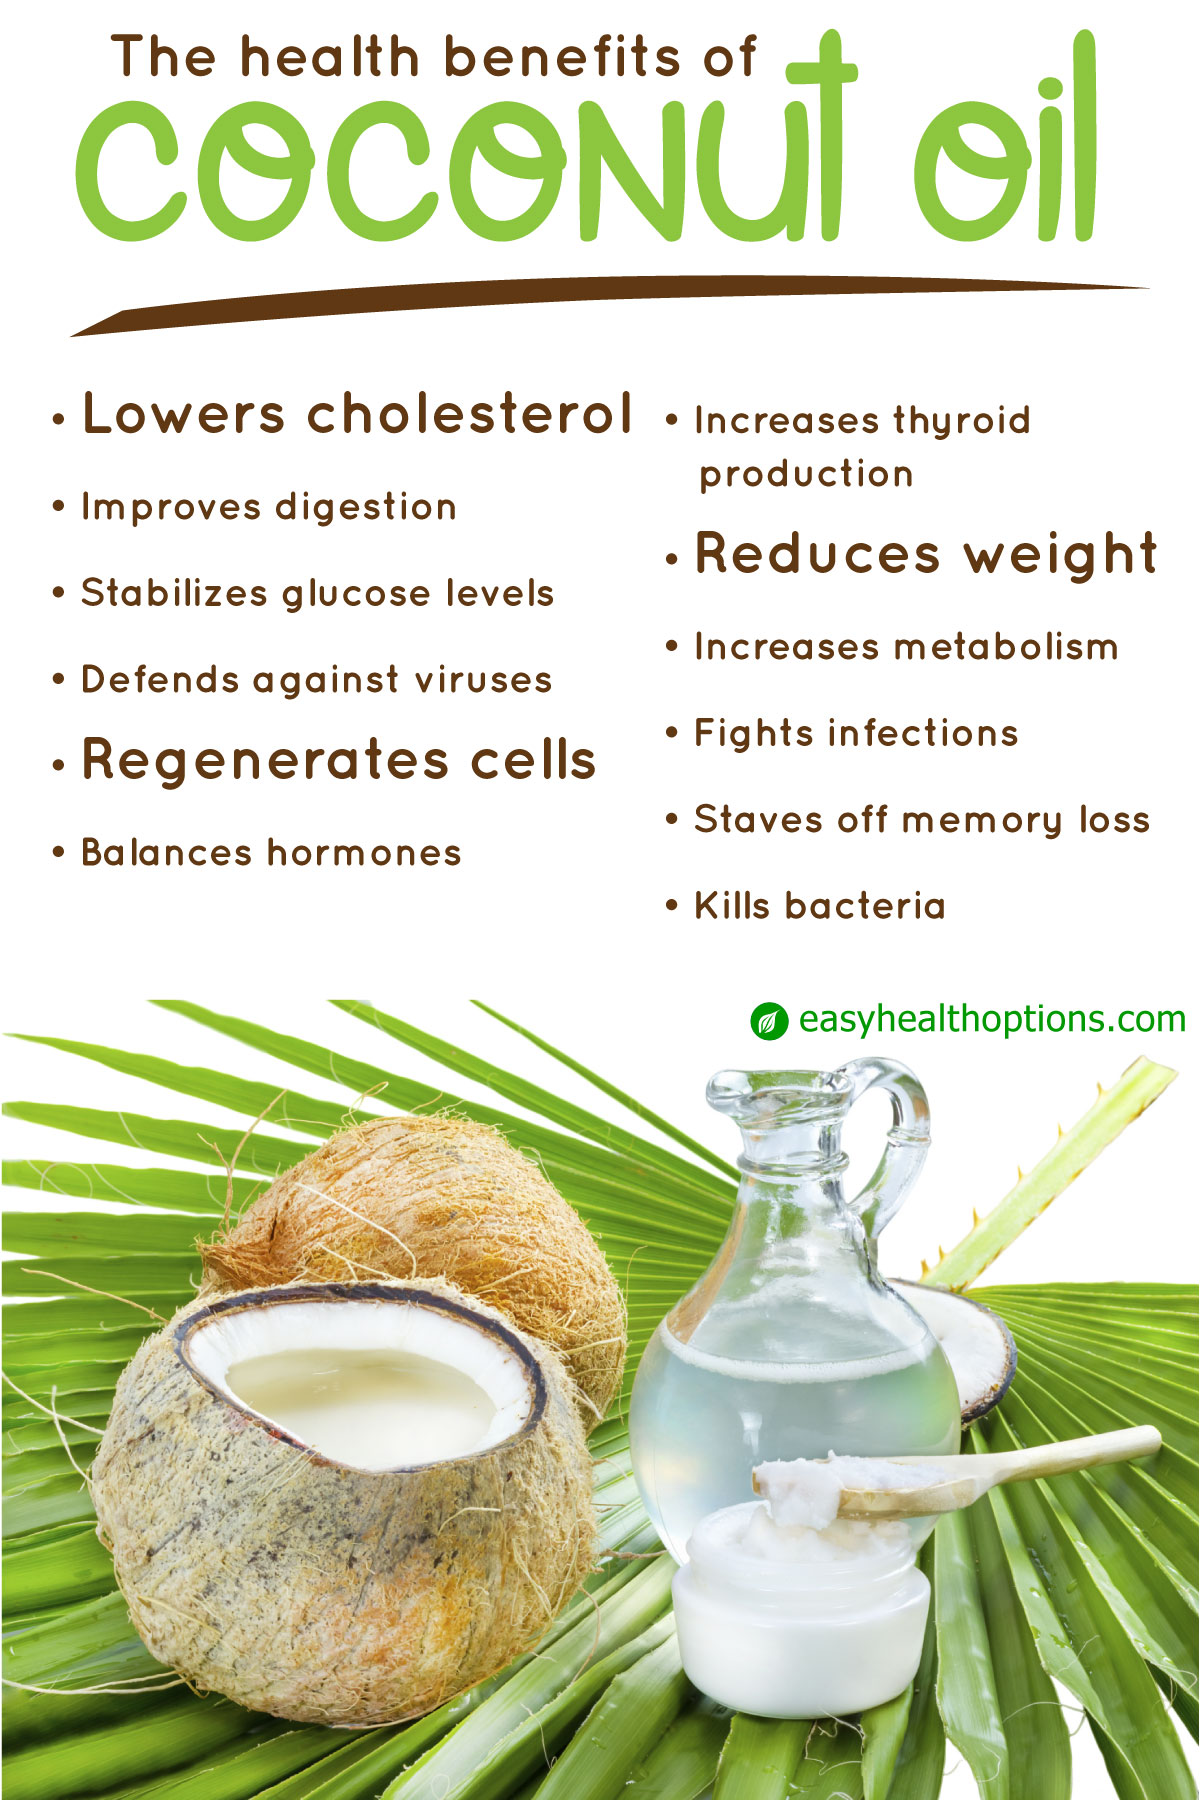 What Is Natural Coconut Water Good For